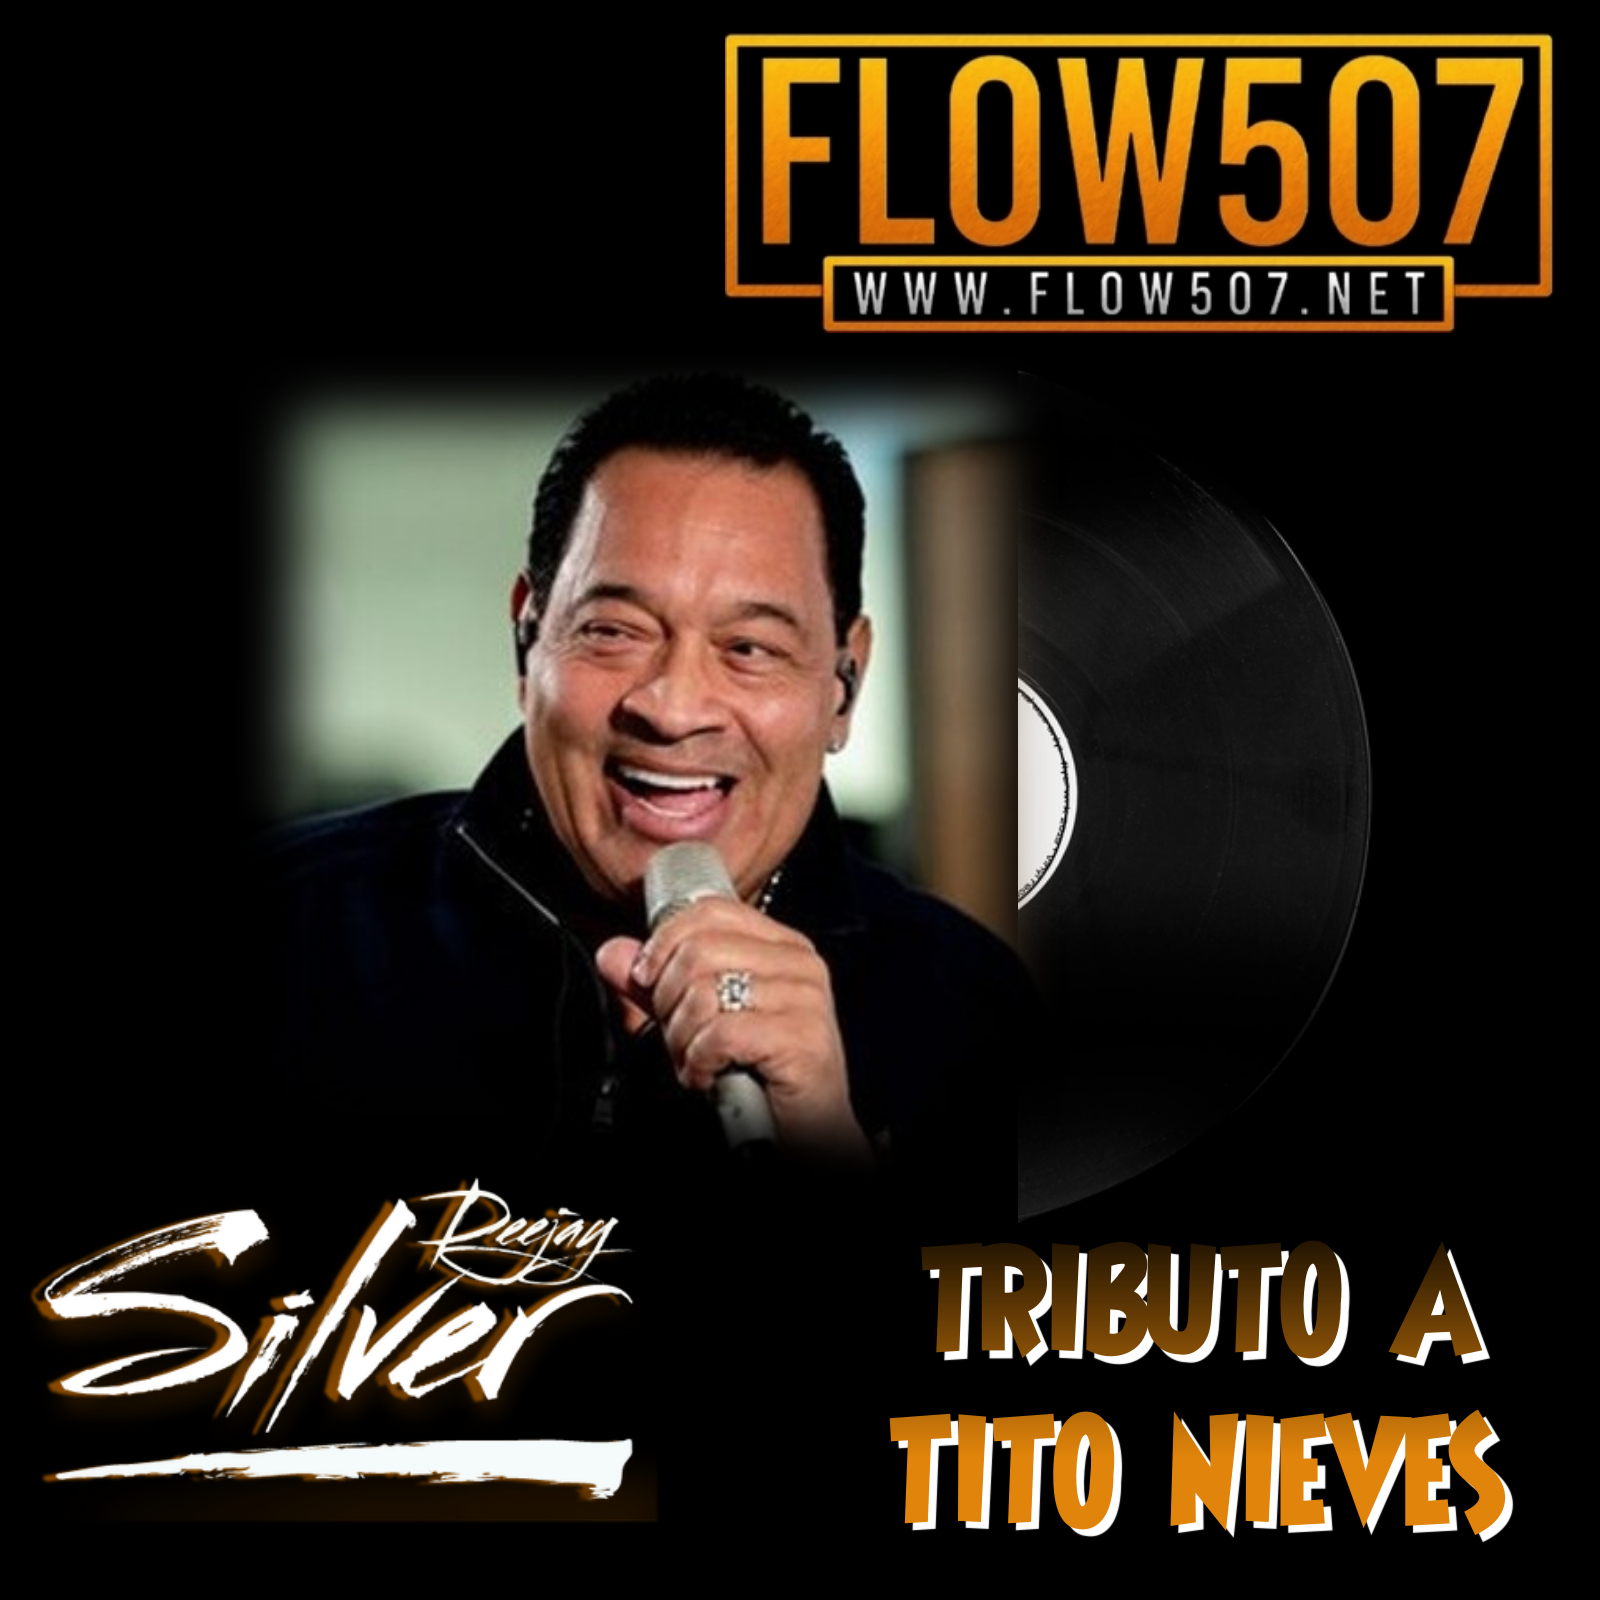 DEEJAY SILVER - TRIBUTO A TITO NIEVES